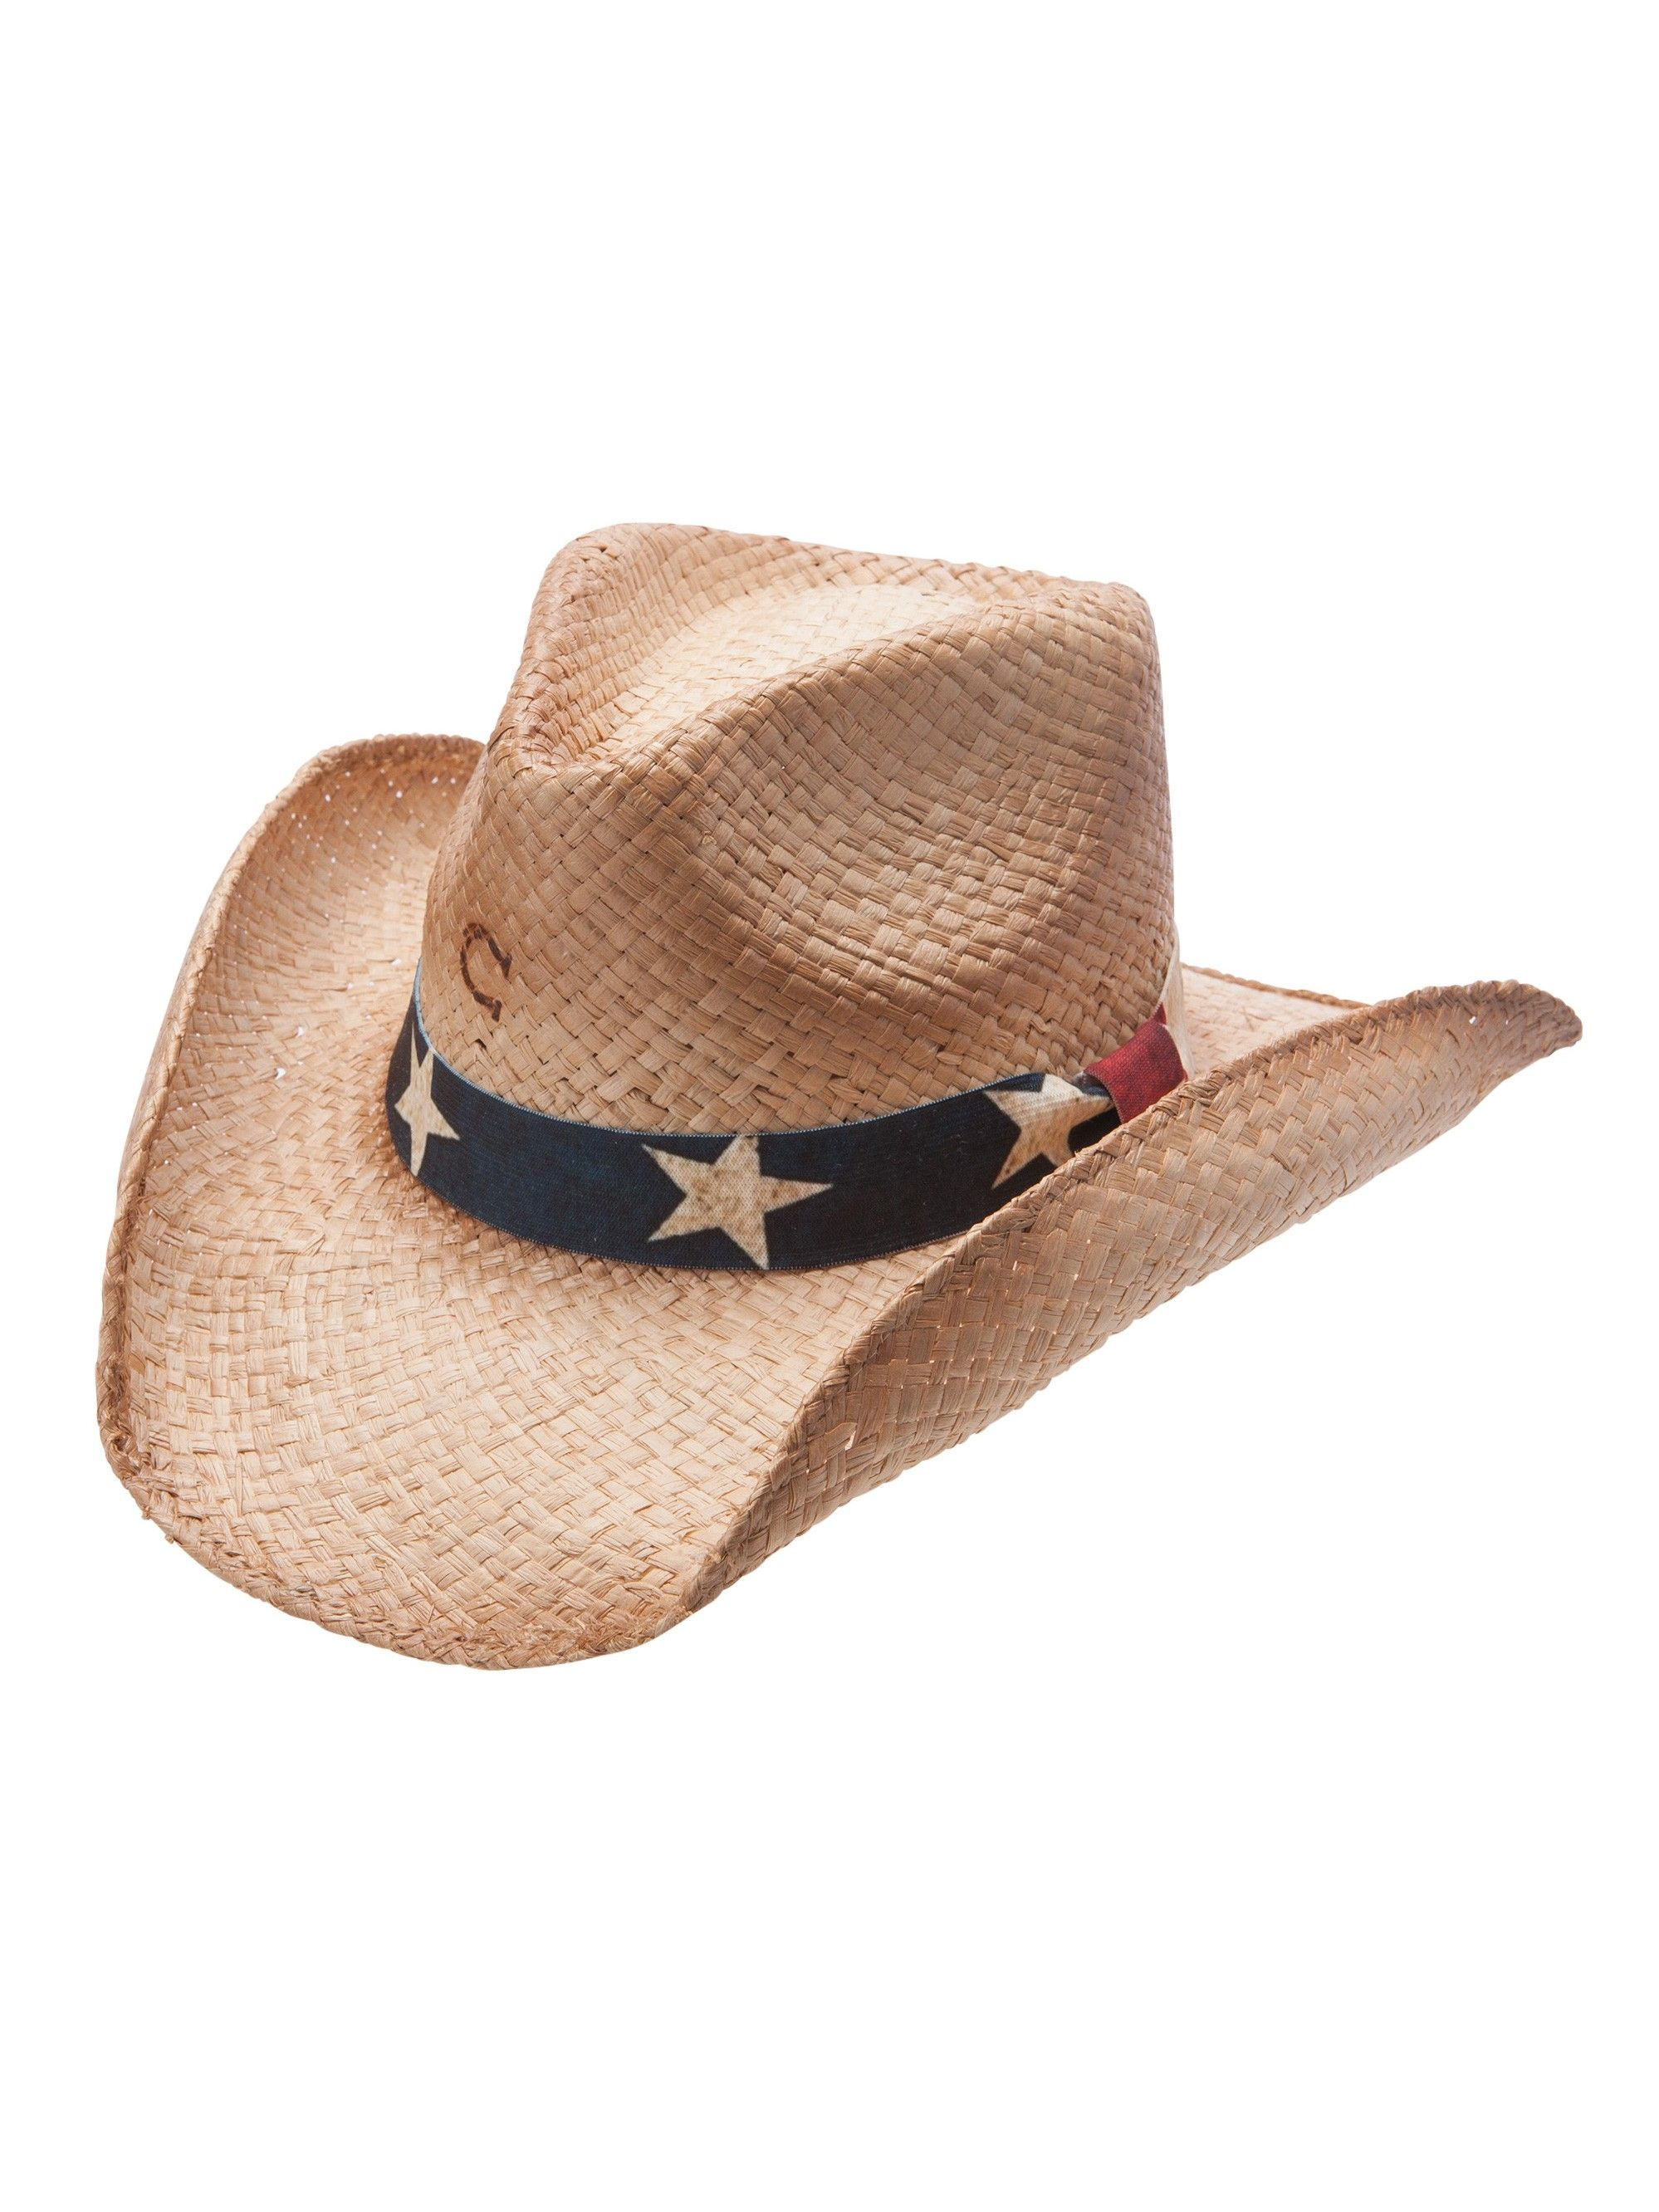 57f42730ba02a Ladies Stetson Stars and Stripes Hat - Texas Boot Company is located in  Bastrop